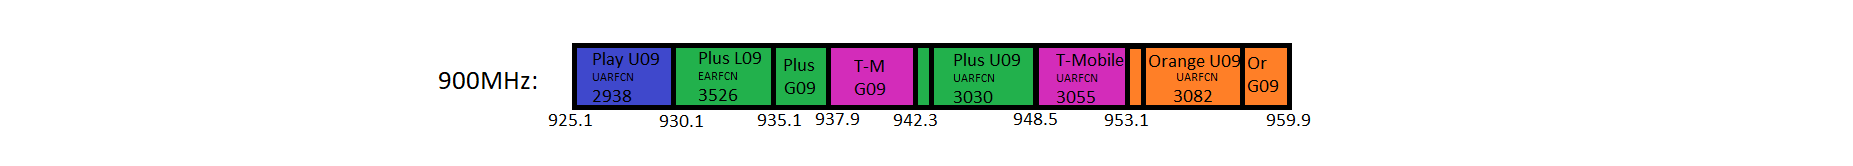 900MHz (band 8) use for 2G, 3G and 4G in Poland.